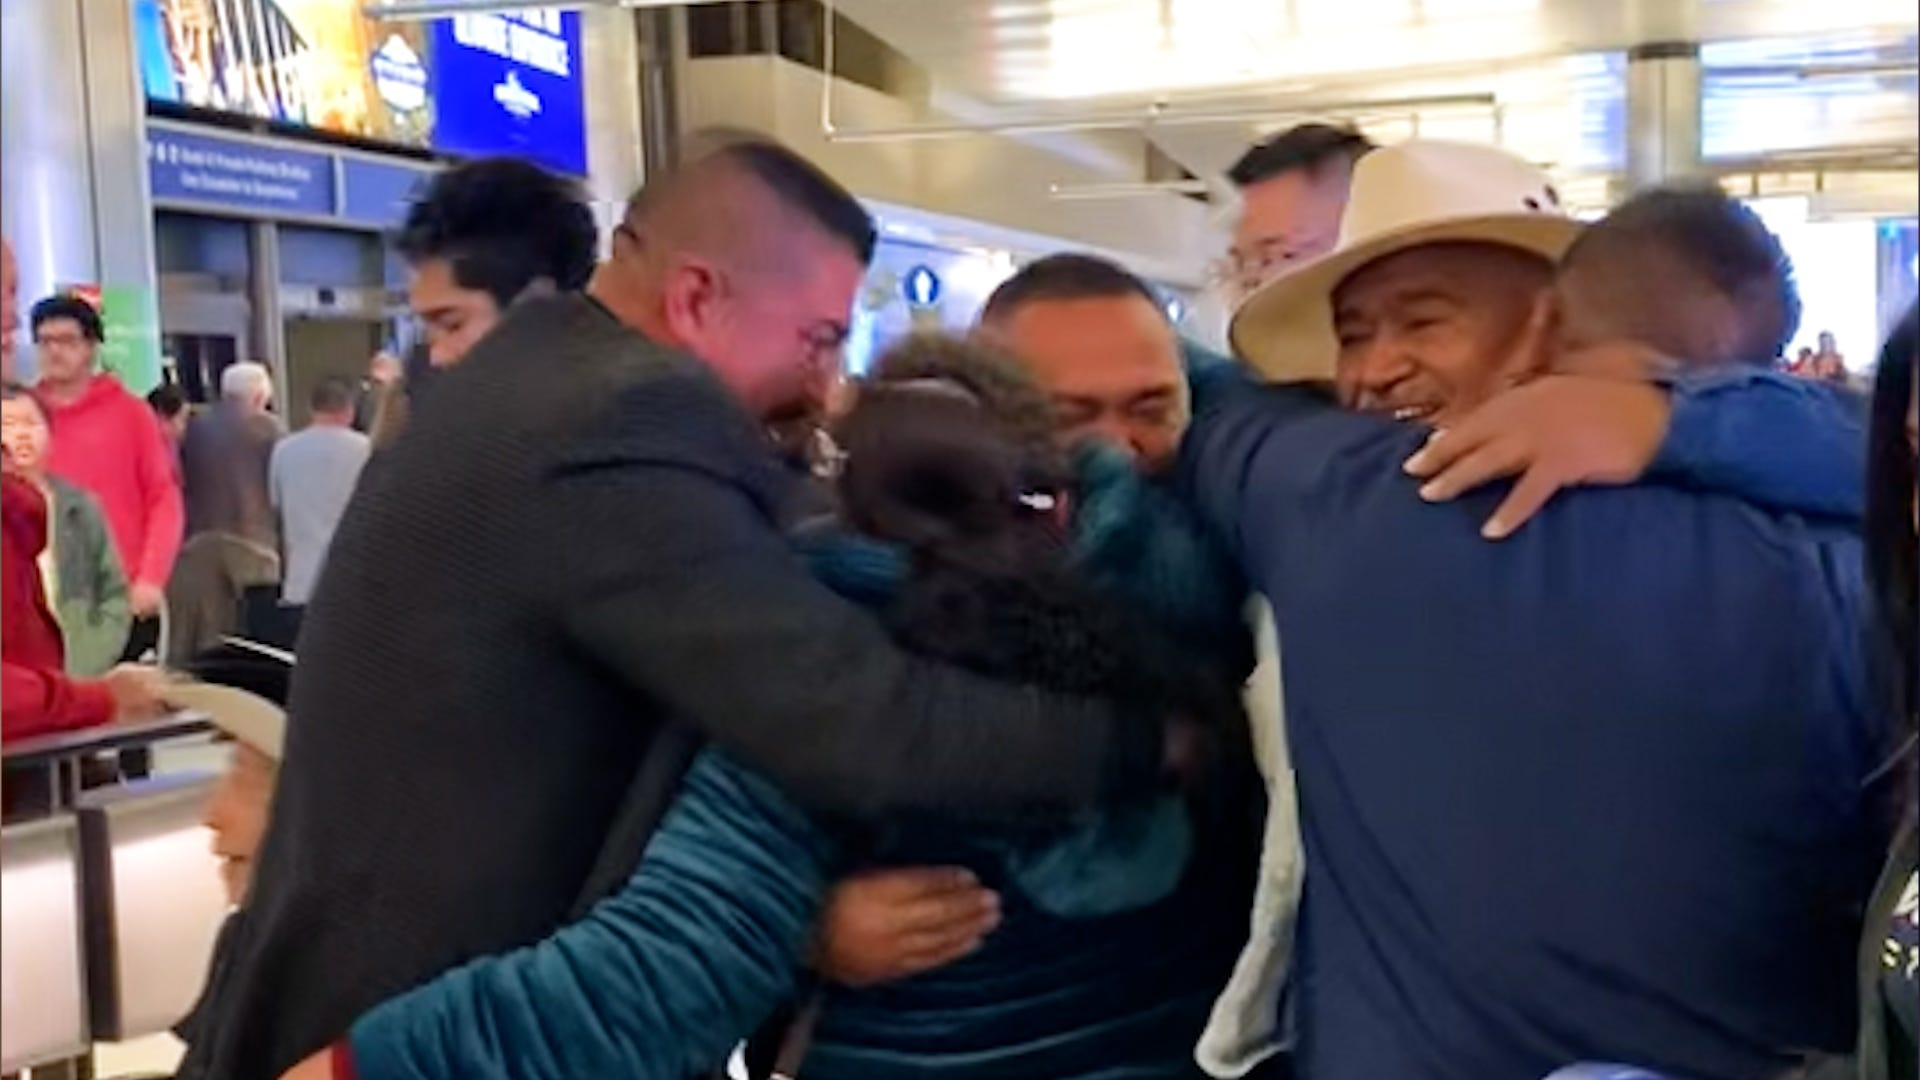 Brothers sob as they see their parents in person after 22 years